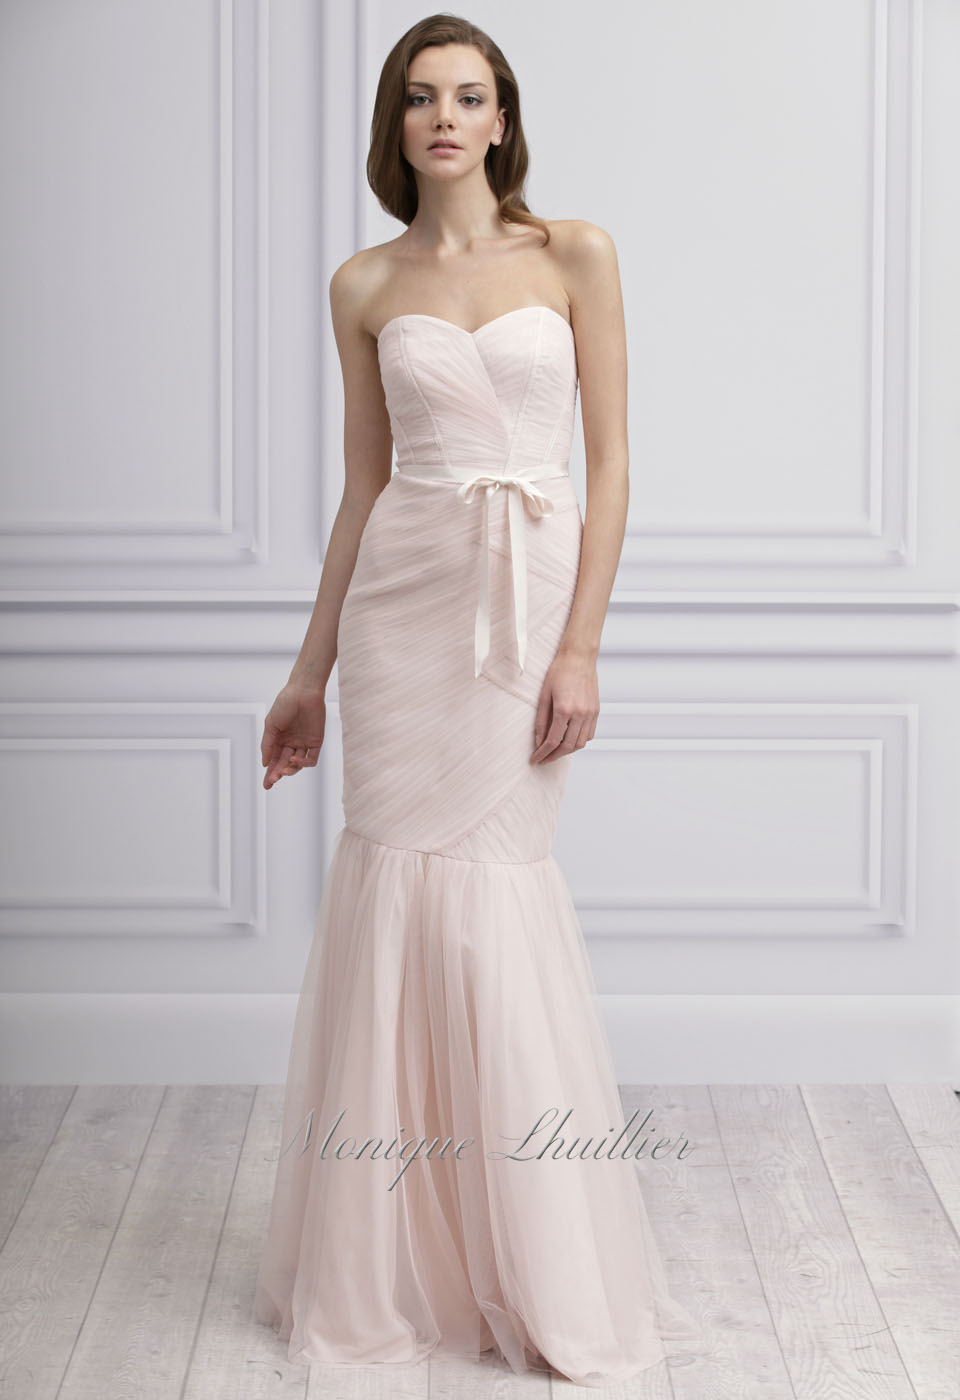 Light pink monique lhuillier bridesmaid dress for Wedding dress with lights